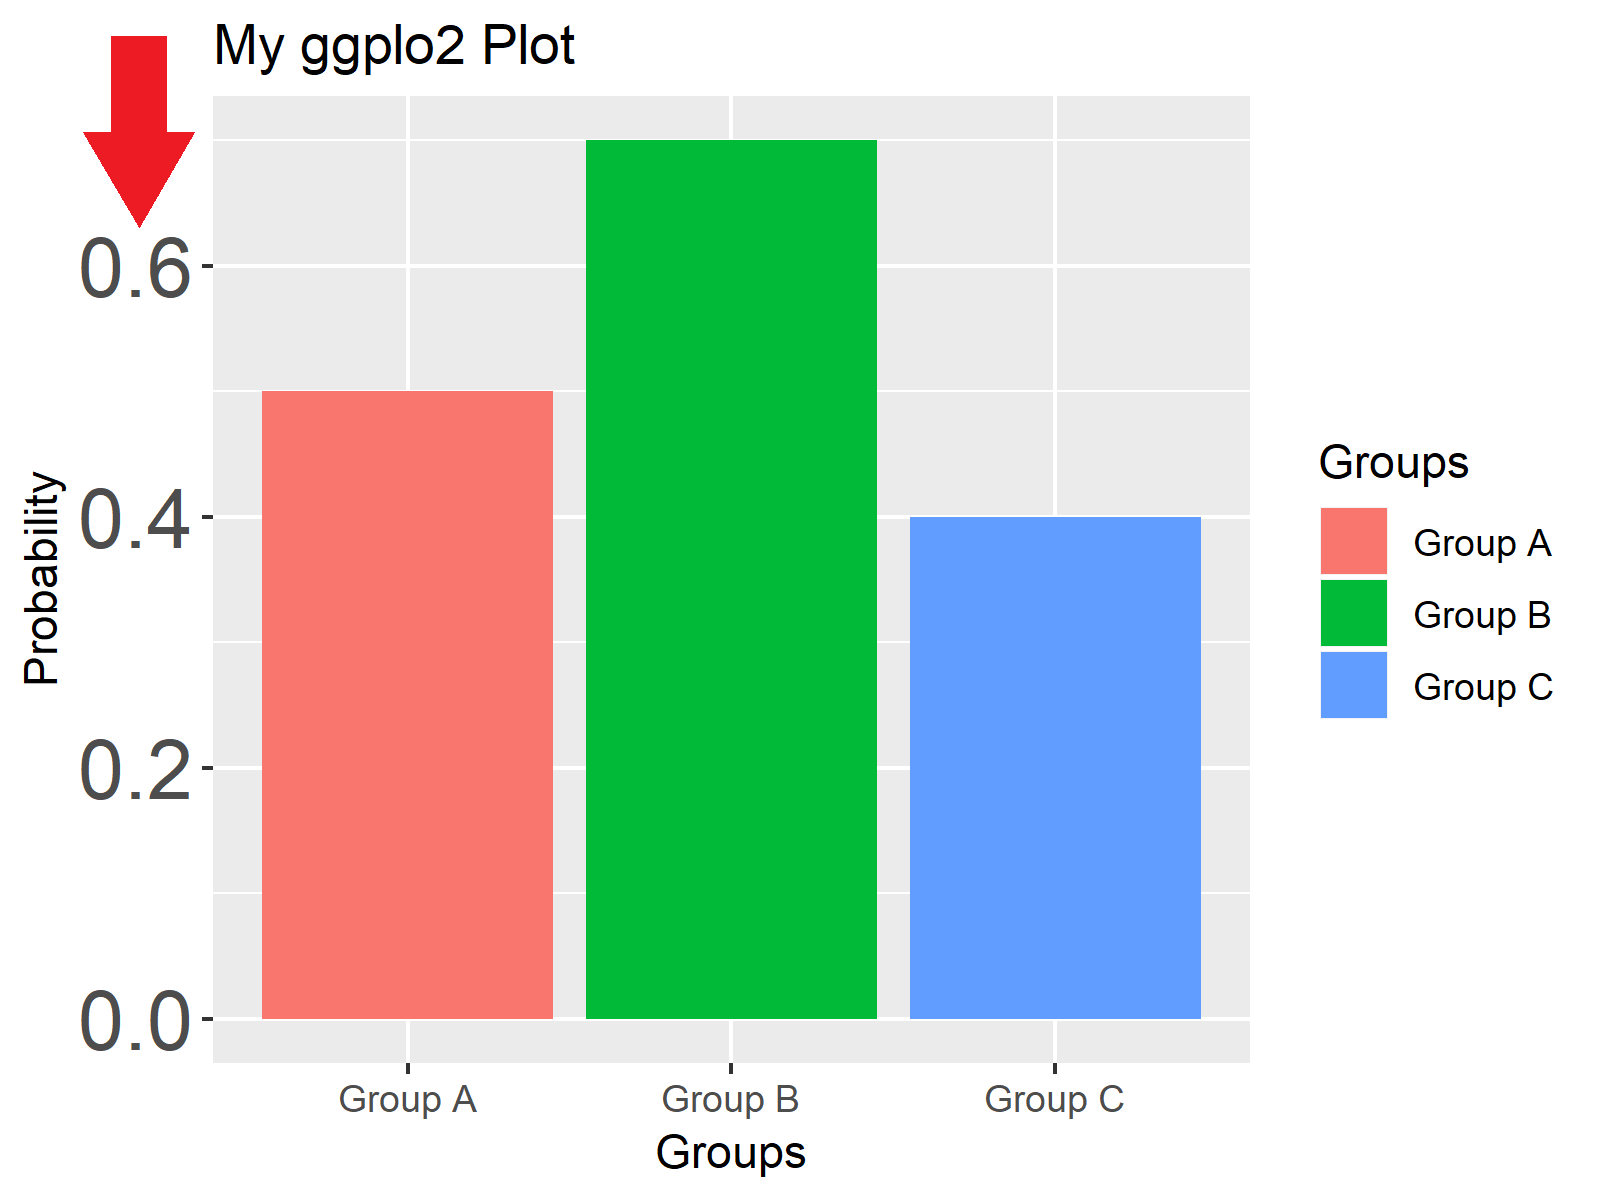 r ggplot2 plot font size of y axis text